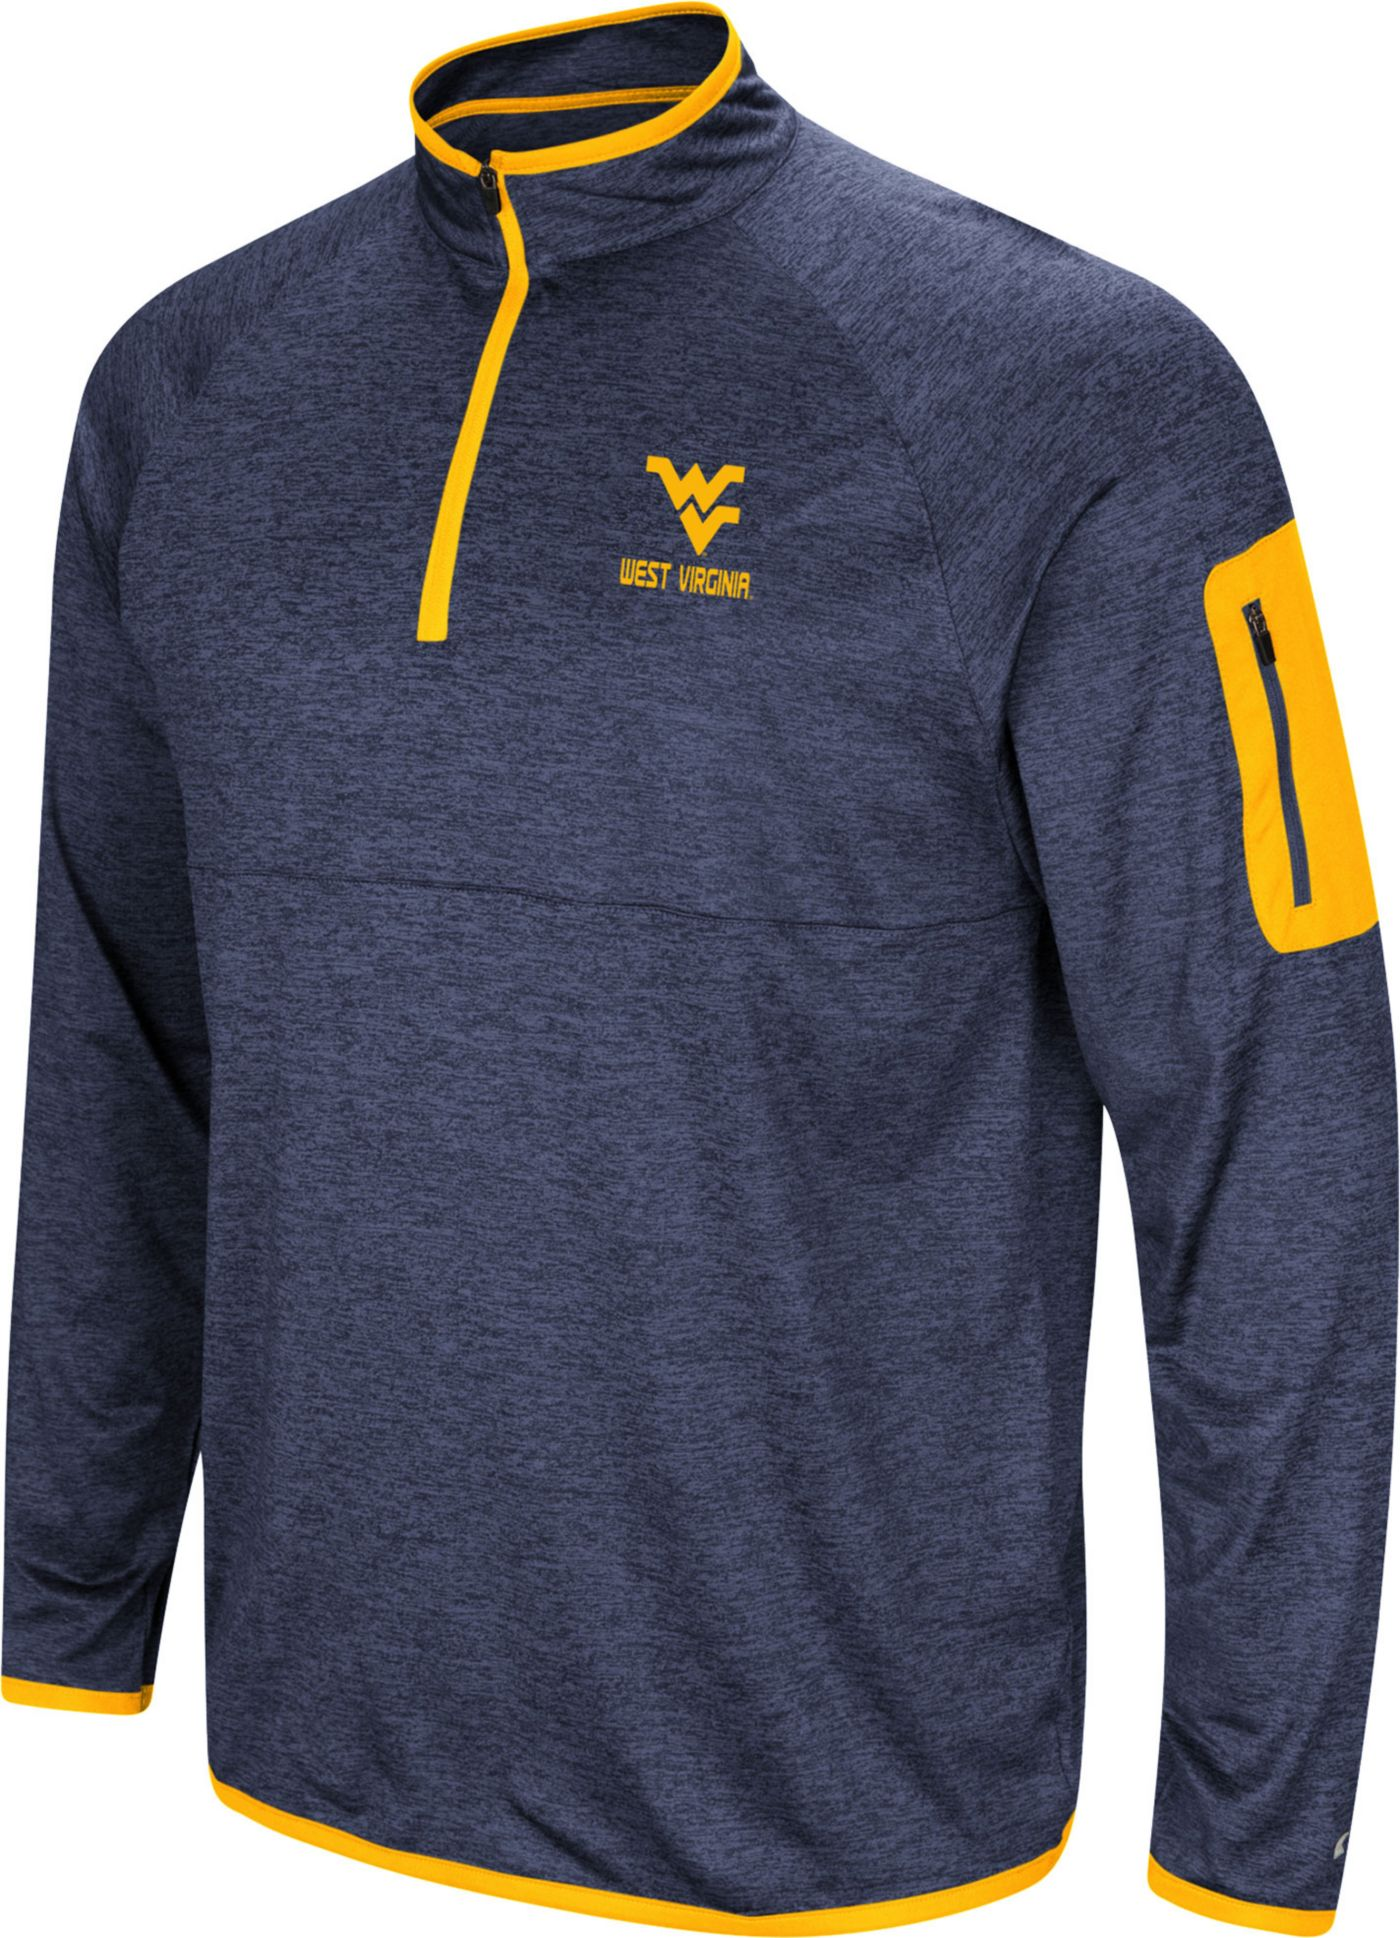 Colosseum Men's West Virginia Mountaineers Blue Indus River Quarter-Zip Shirt